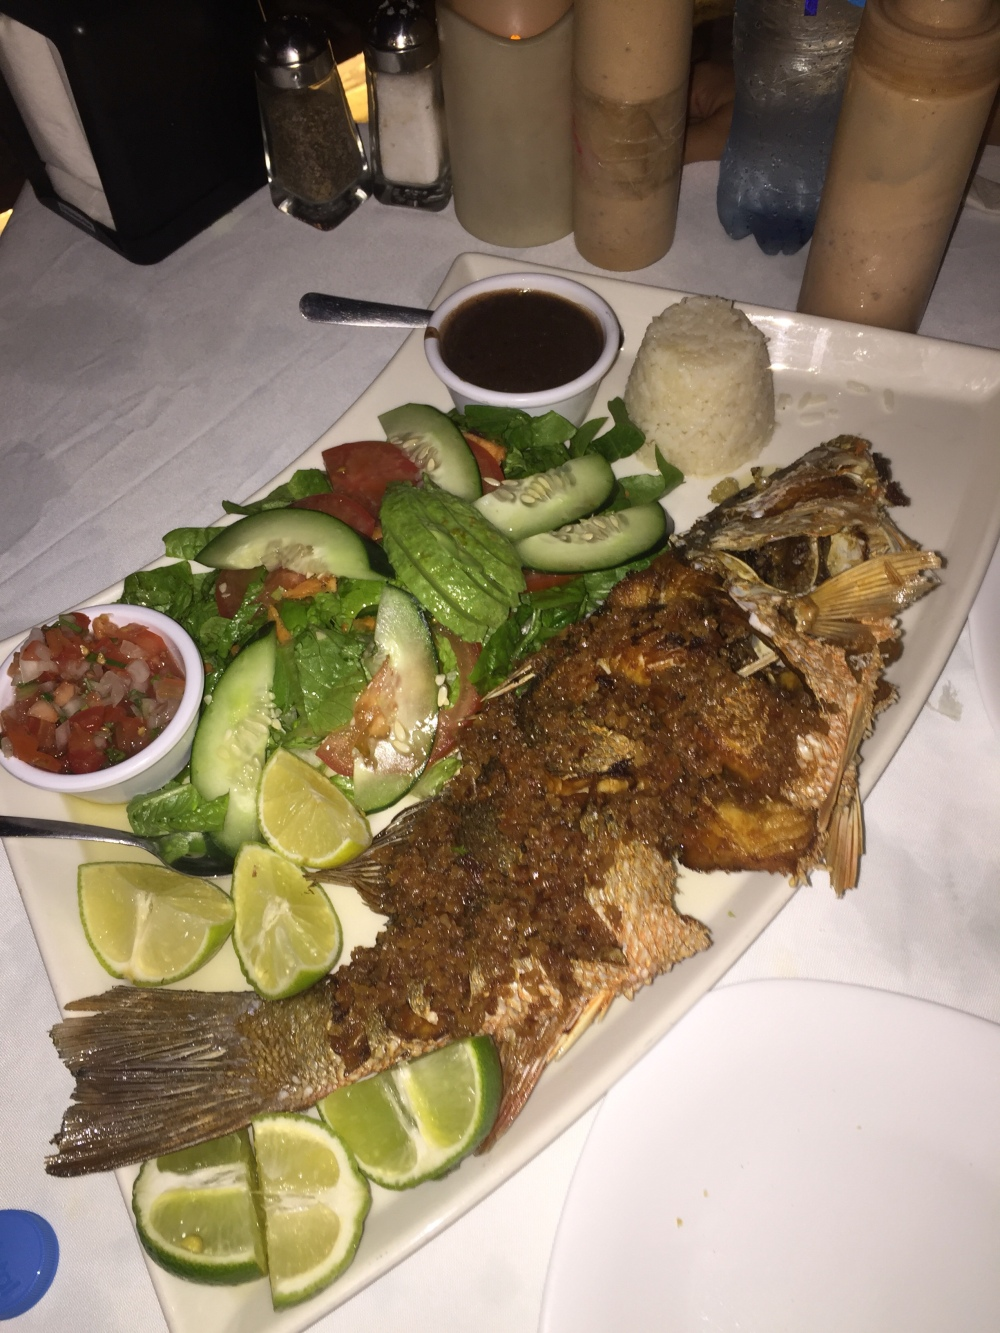 Giant fried fresh red snapper with garlic for two.